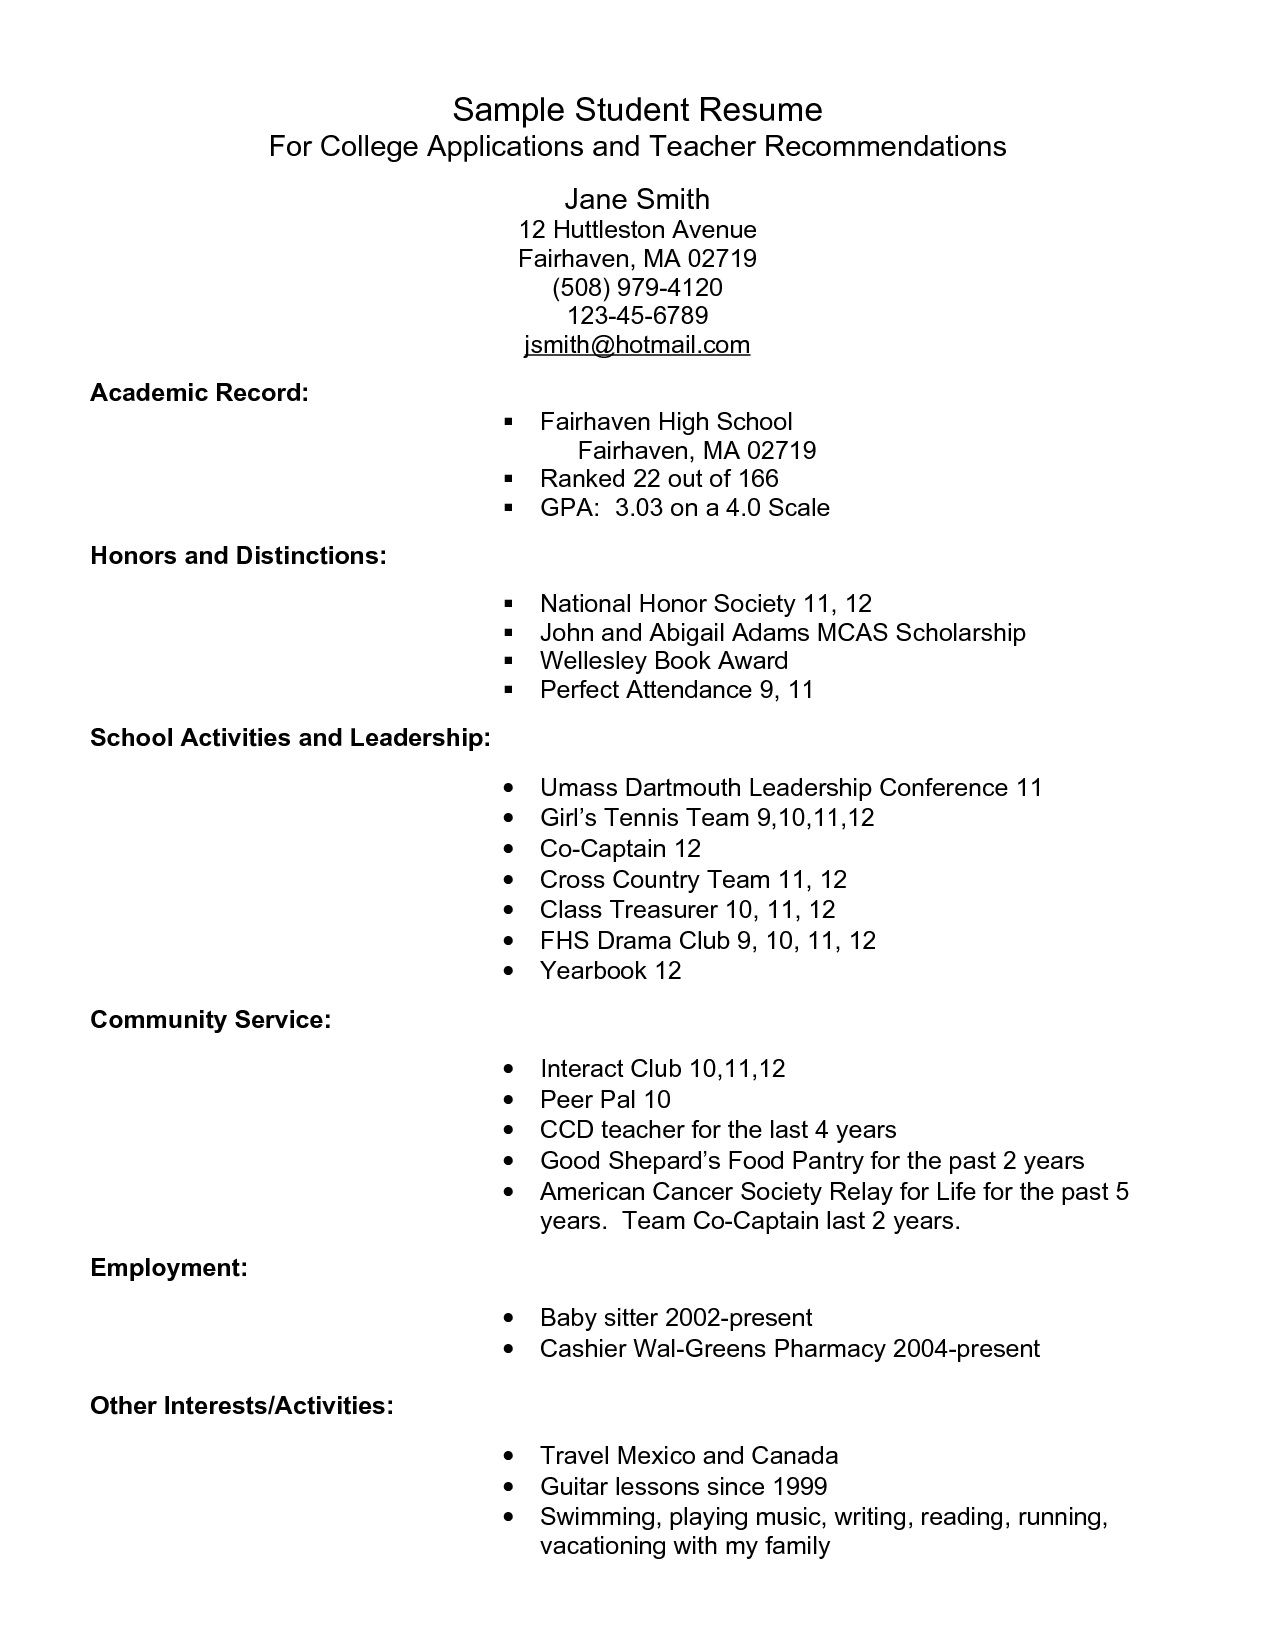 002 Awful Resume For College Application Template Photo  TemplatesFull